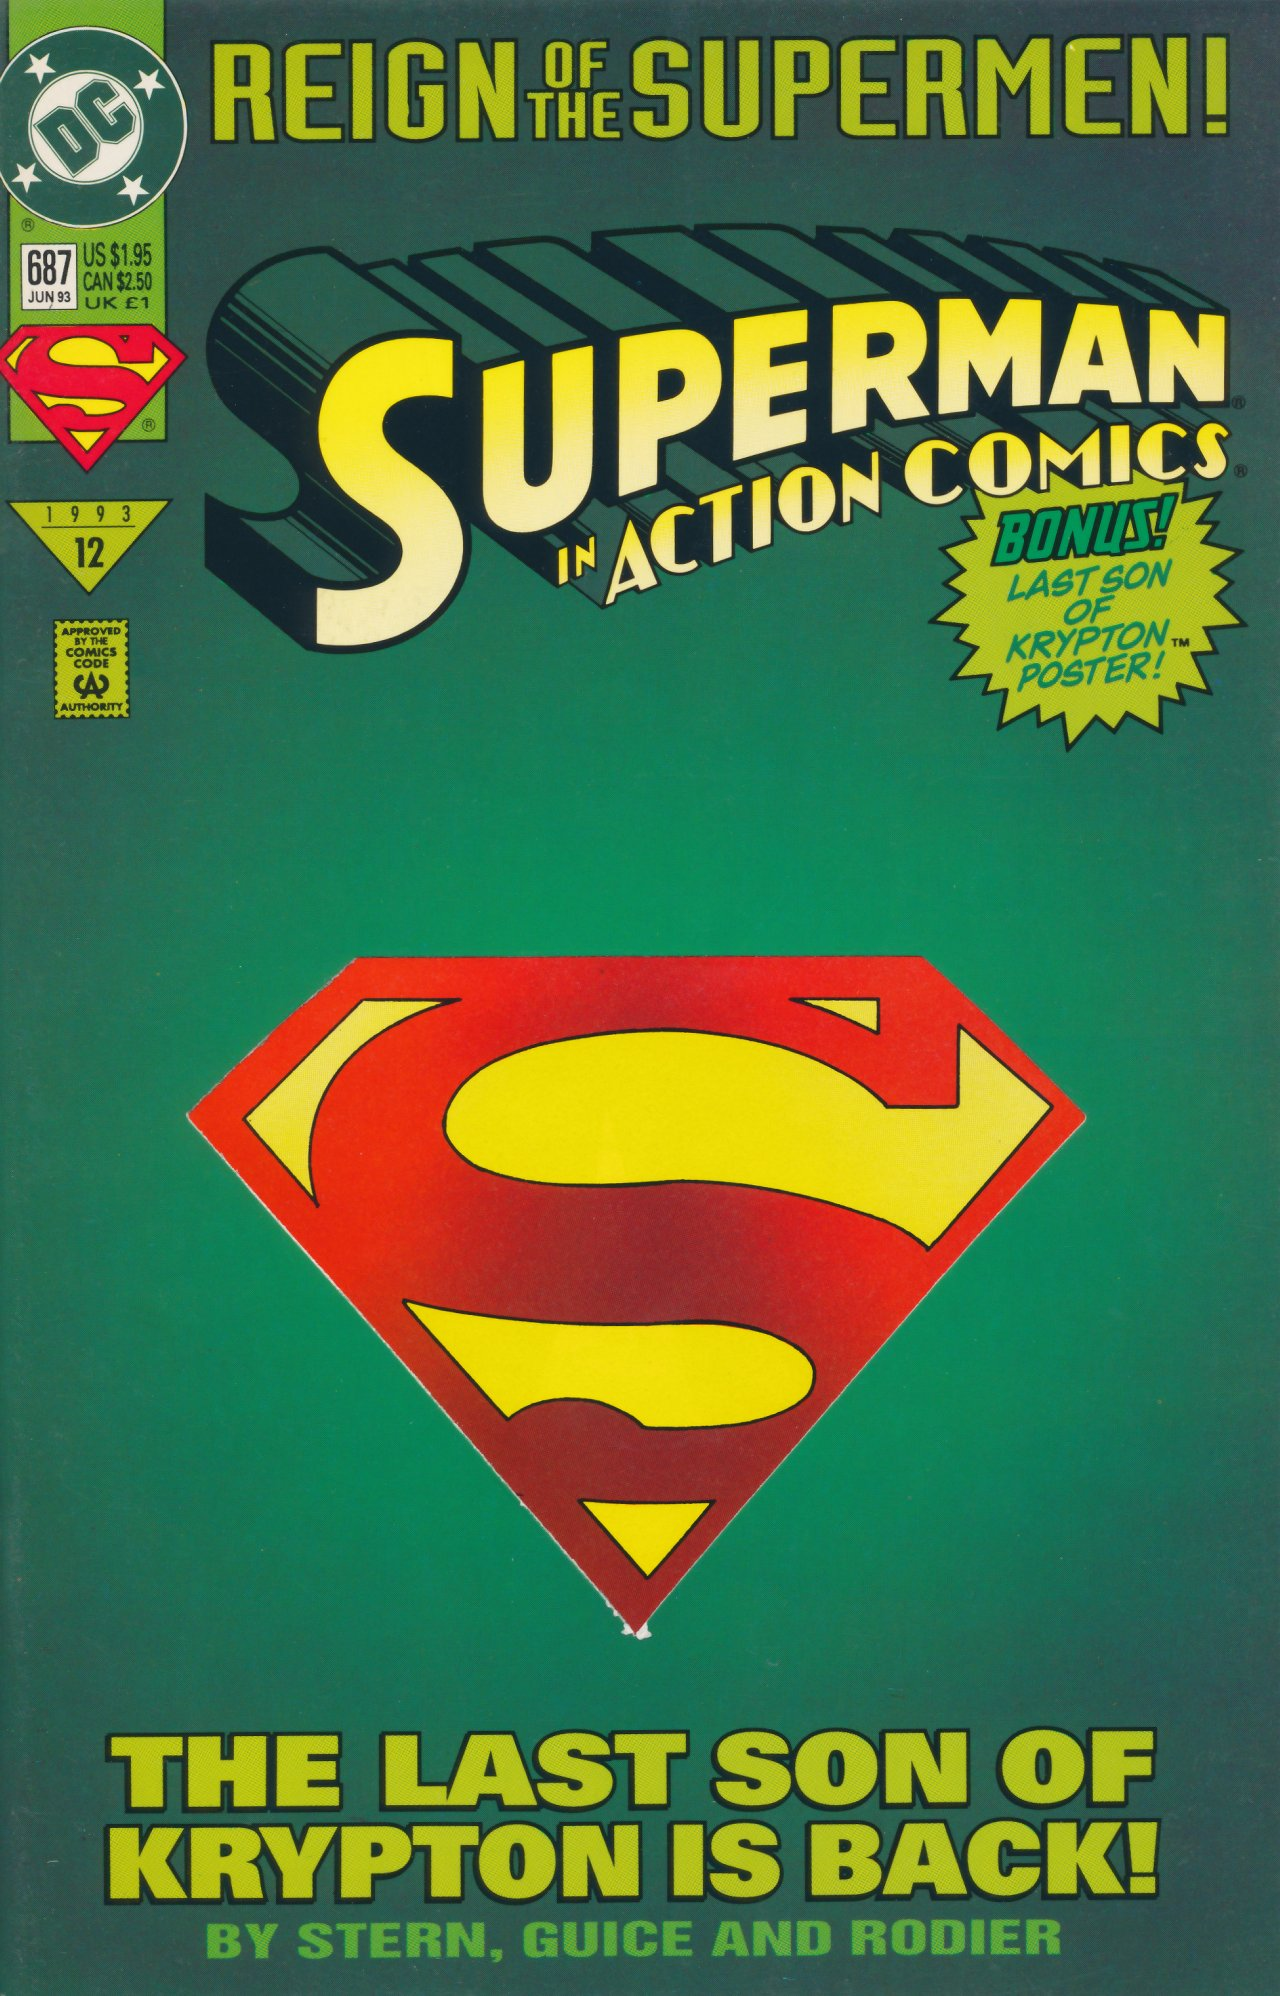 Read online Action Comics (1938) comic -  Issue #687 - 2